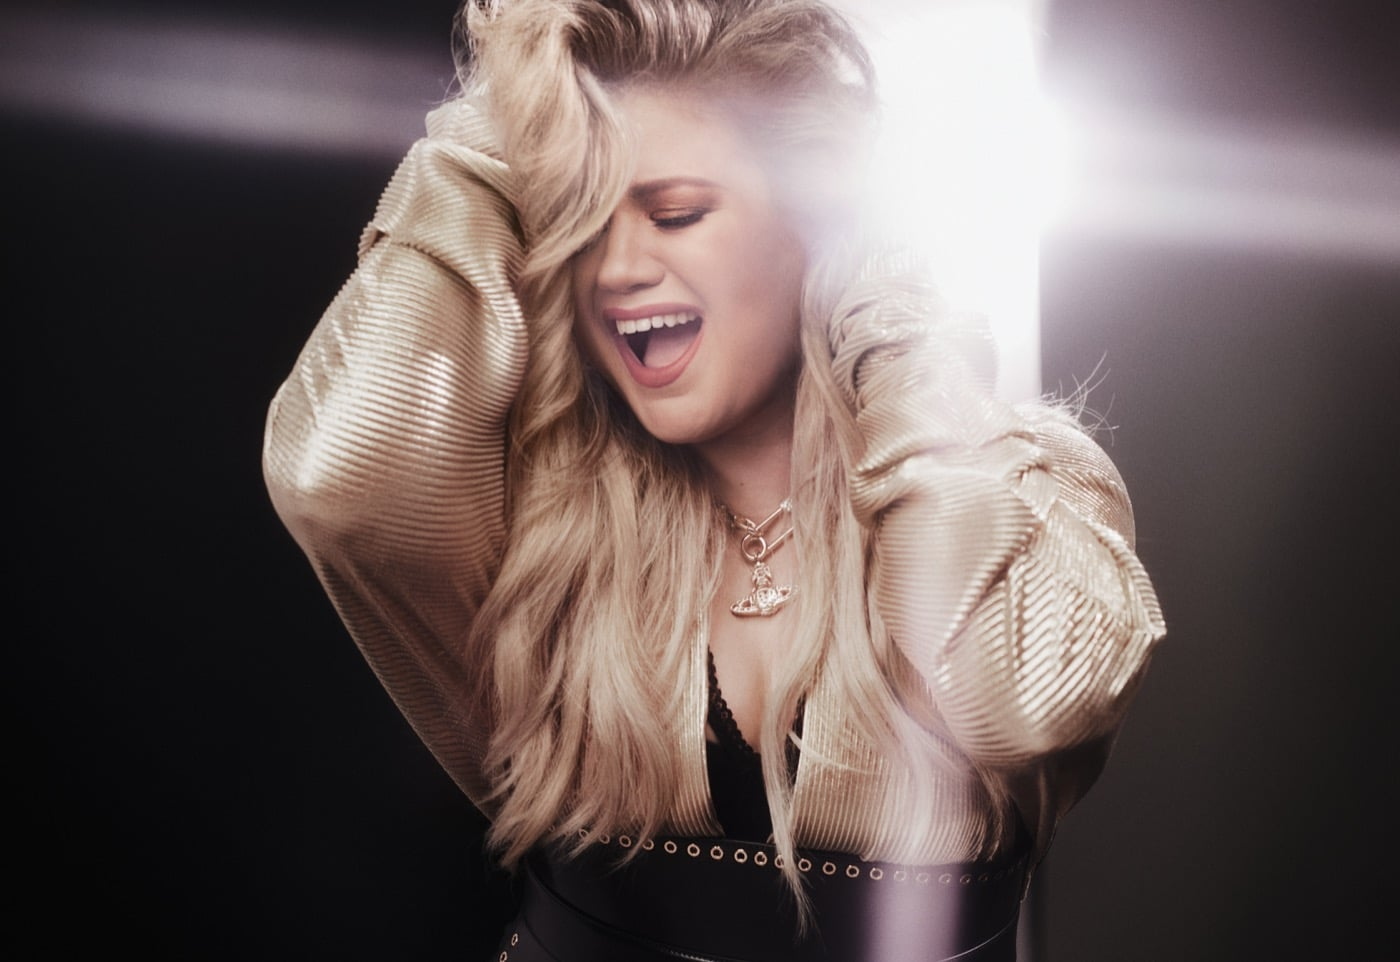 Kelly Clarkson Is Coming To The Infinite Energy Arena In